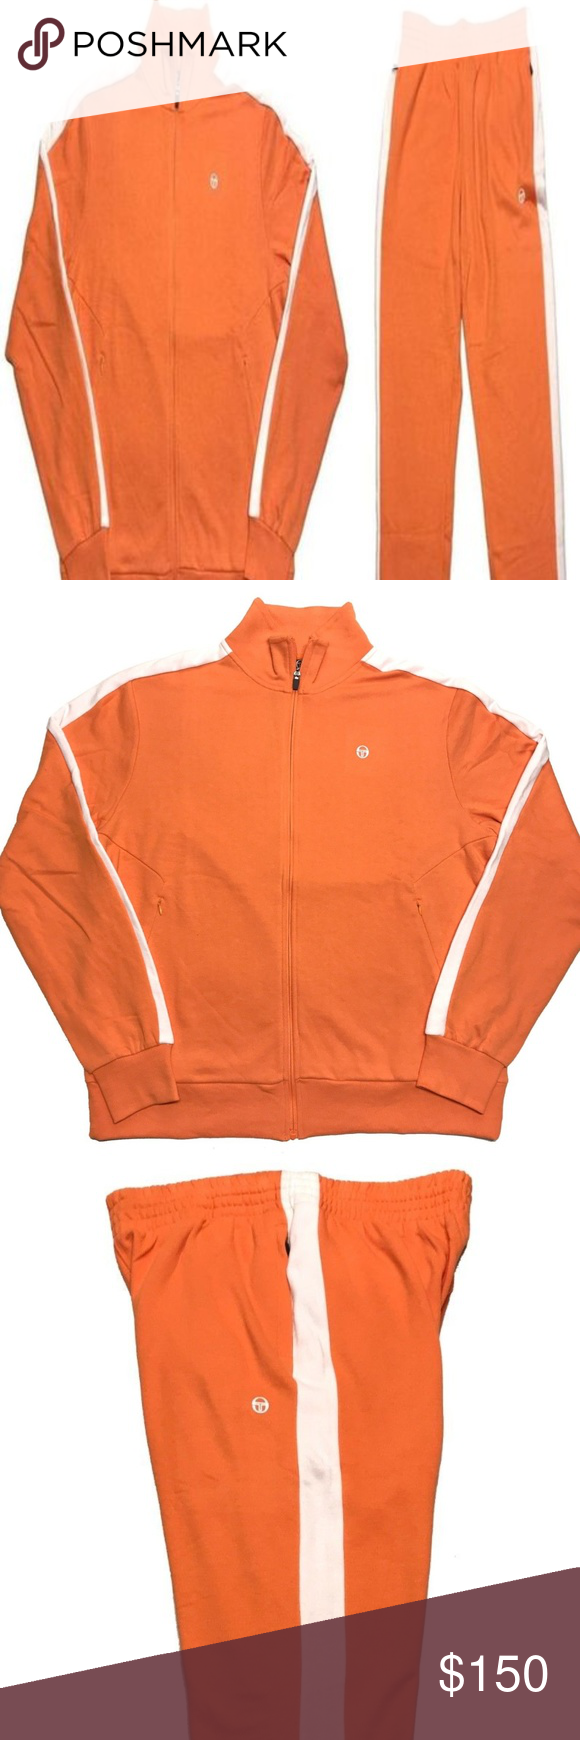 f56376da NEW Sergio Tacchini French Terry Orange Tracksuit This tracksuit is 100%  GENUINE, AUTHENTIC Vintage Sergio Tacchini French Terry Orange White  Tracksuit ...